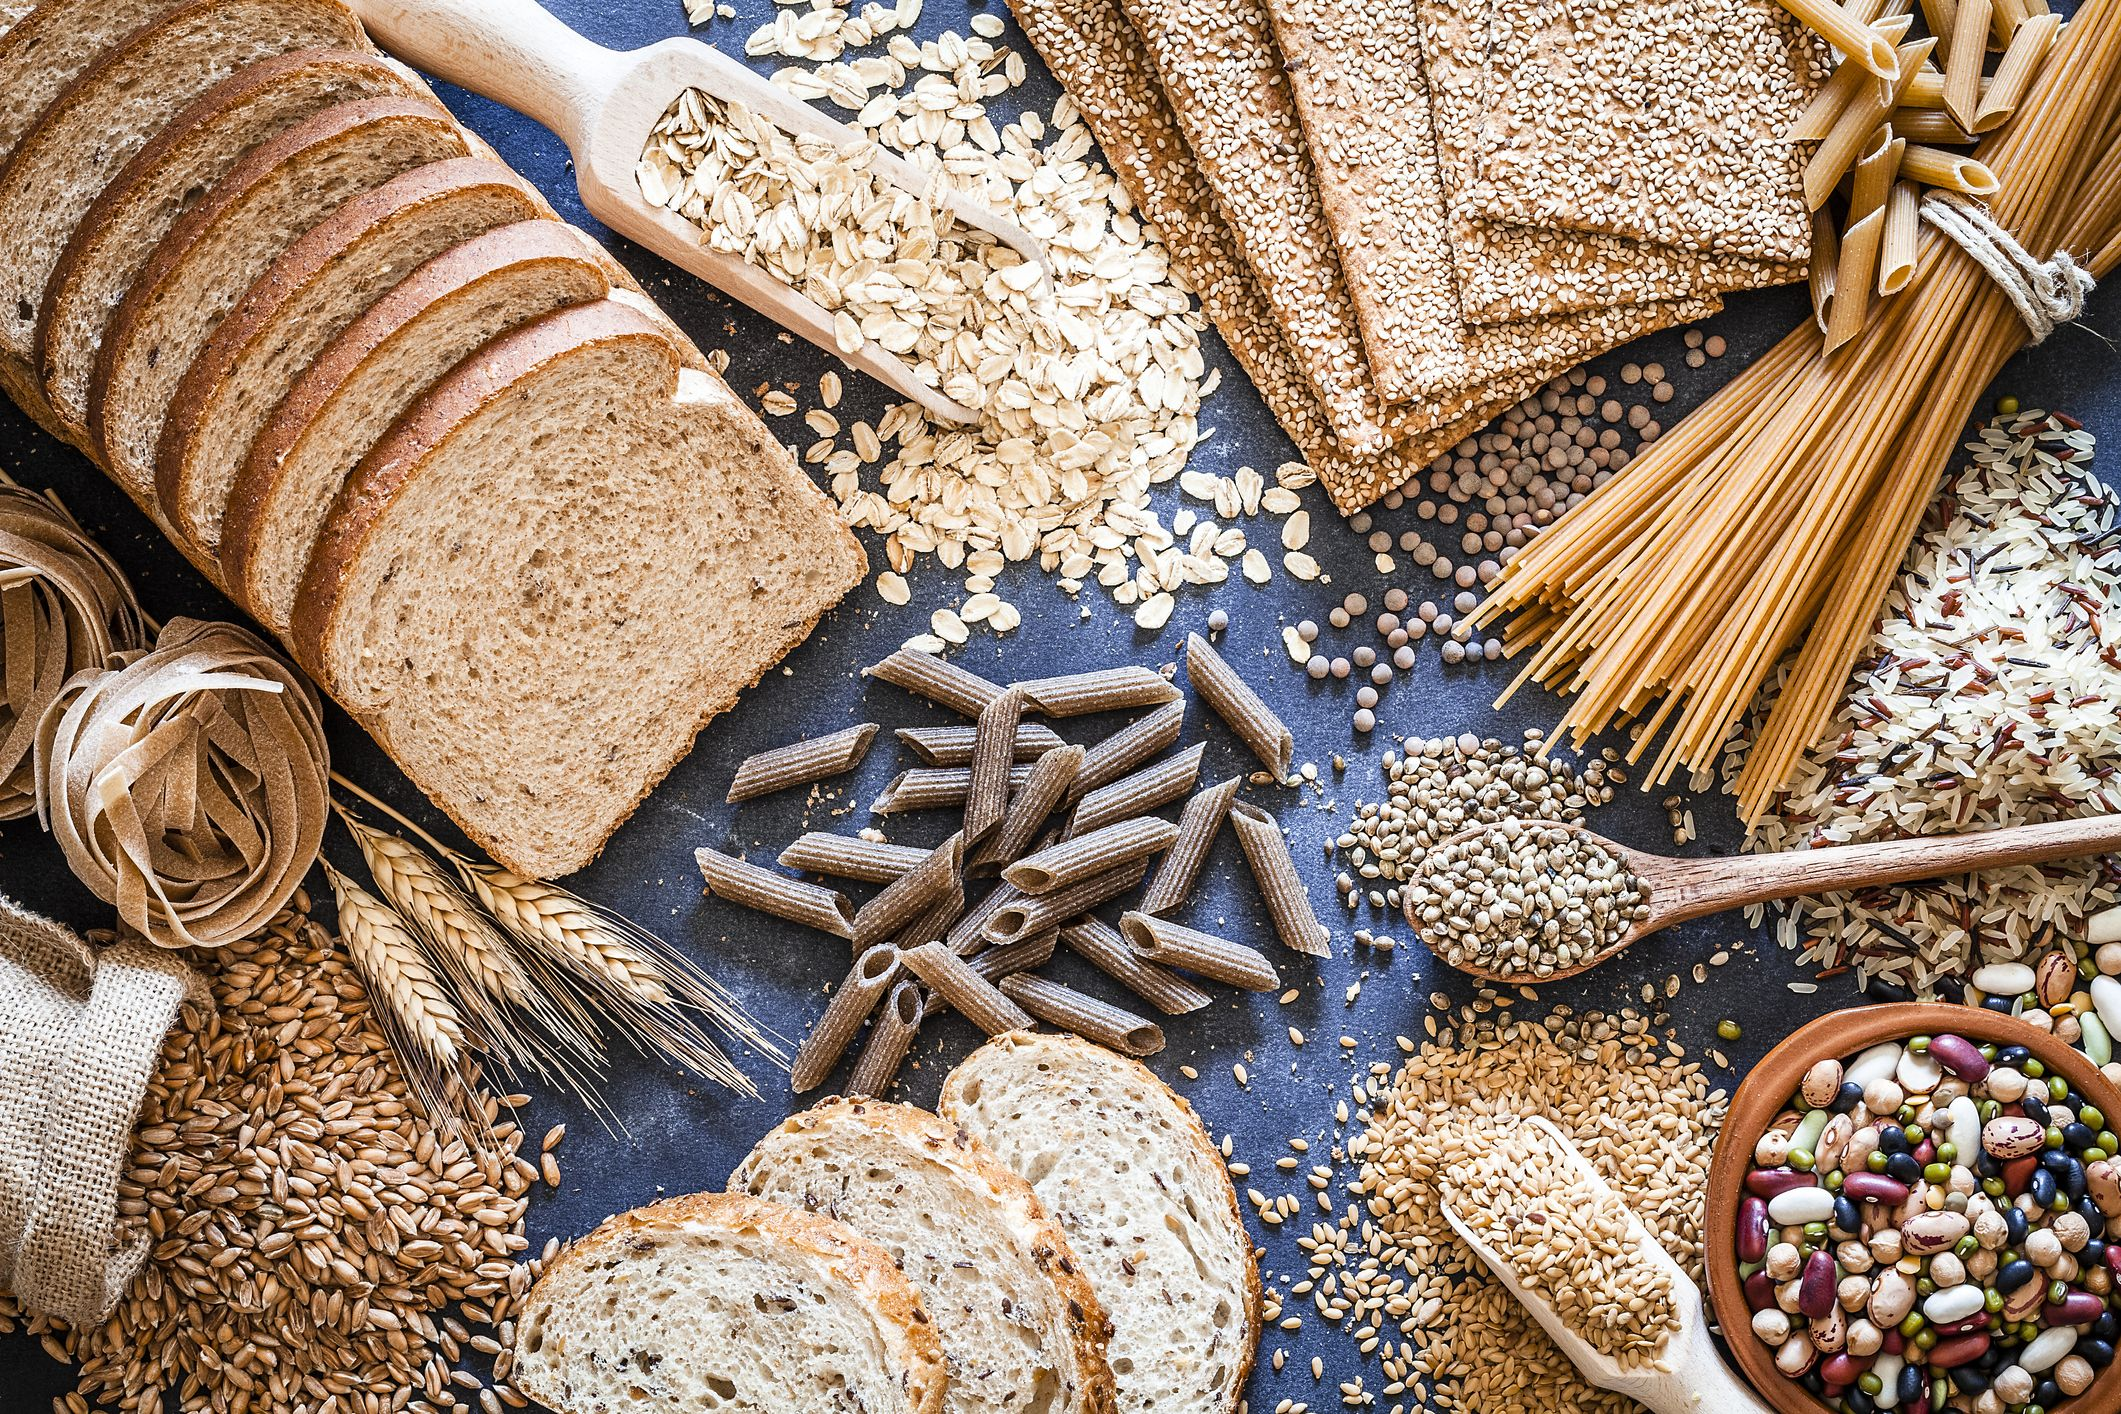 Exactly What Happens to Your Body When You Go Gluten-Free, According to Experts